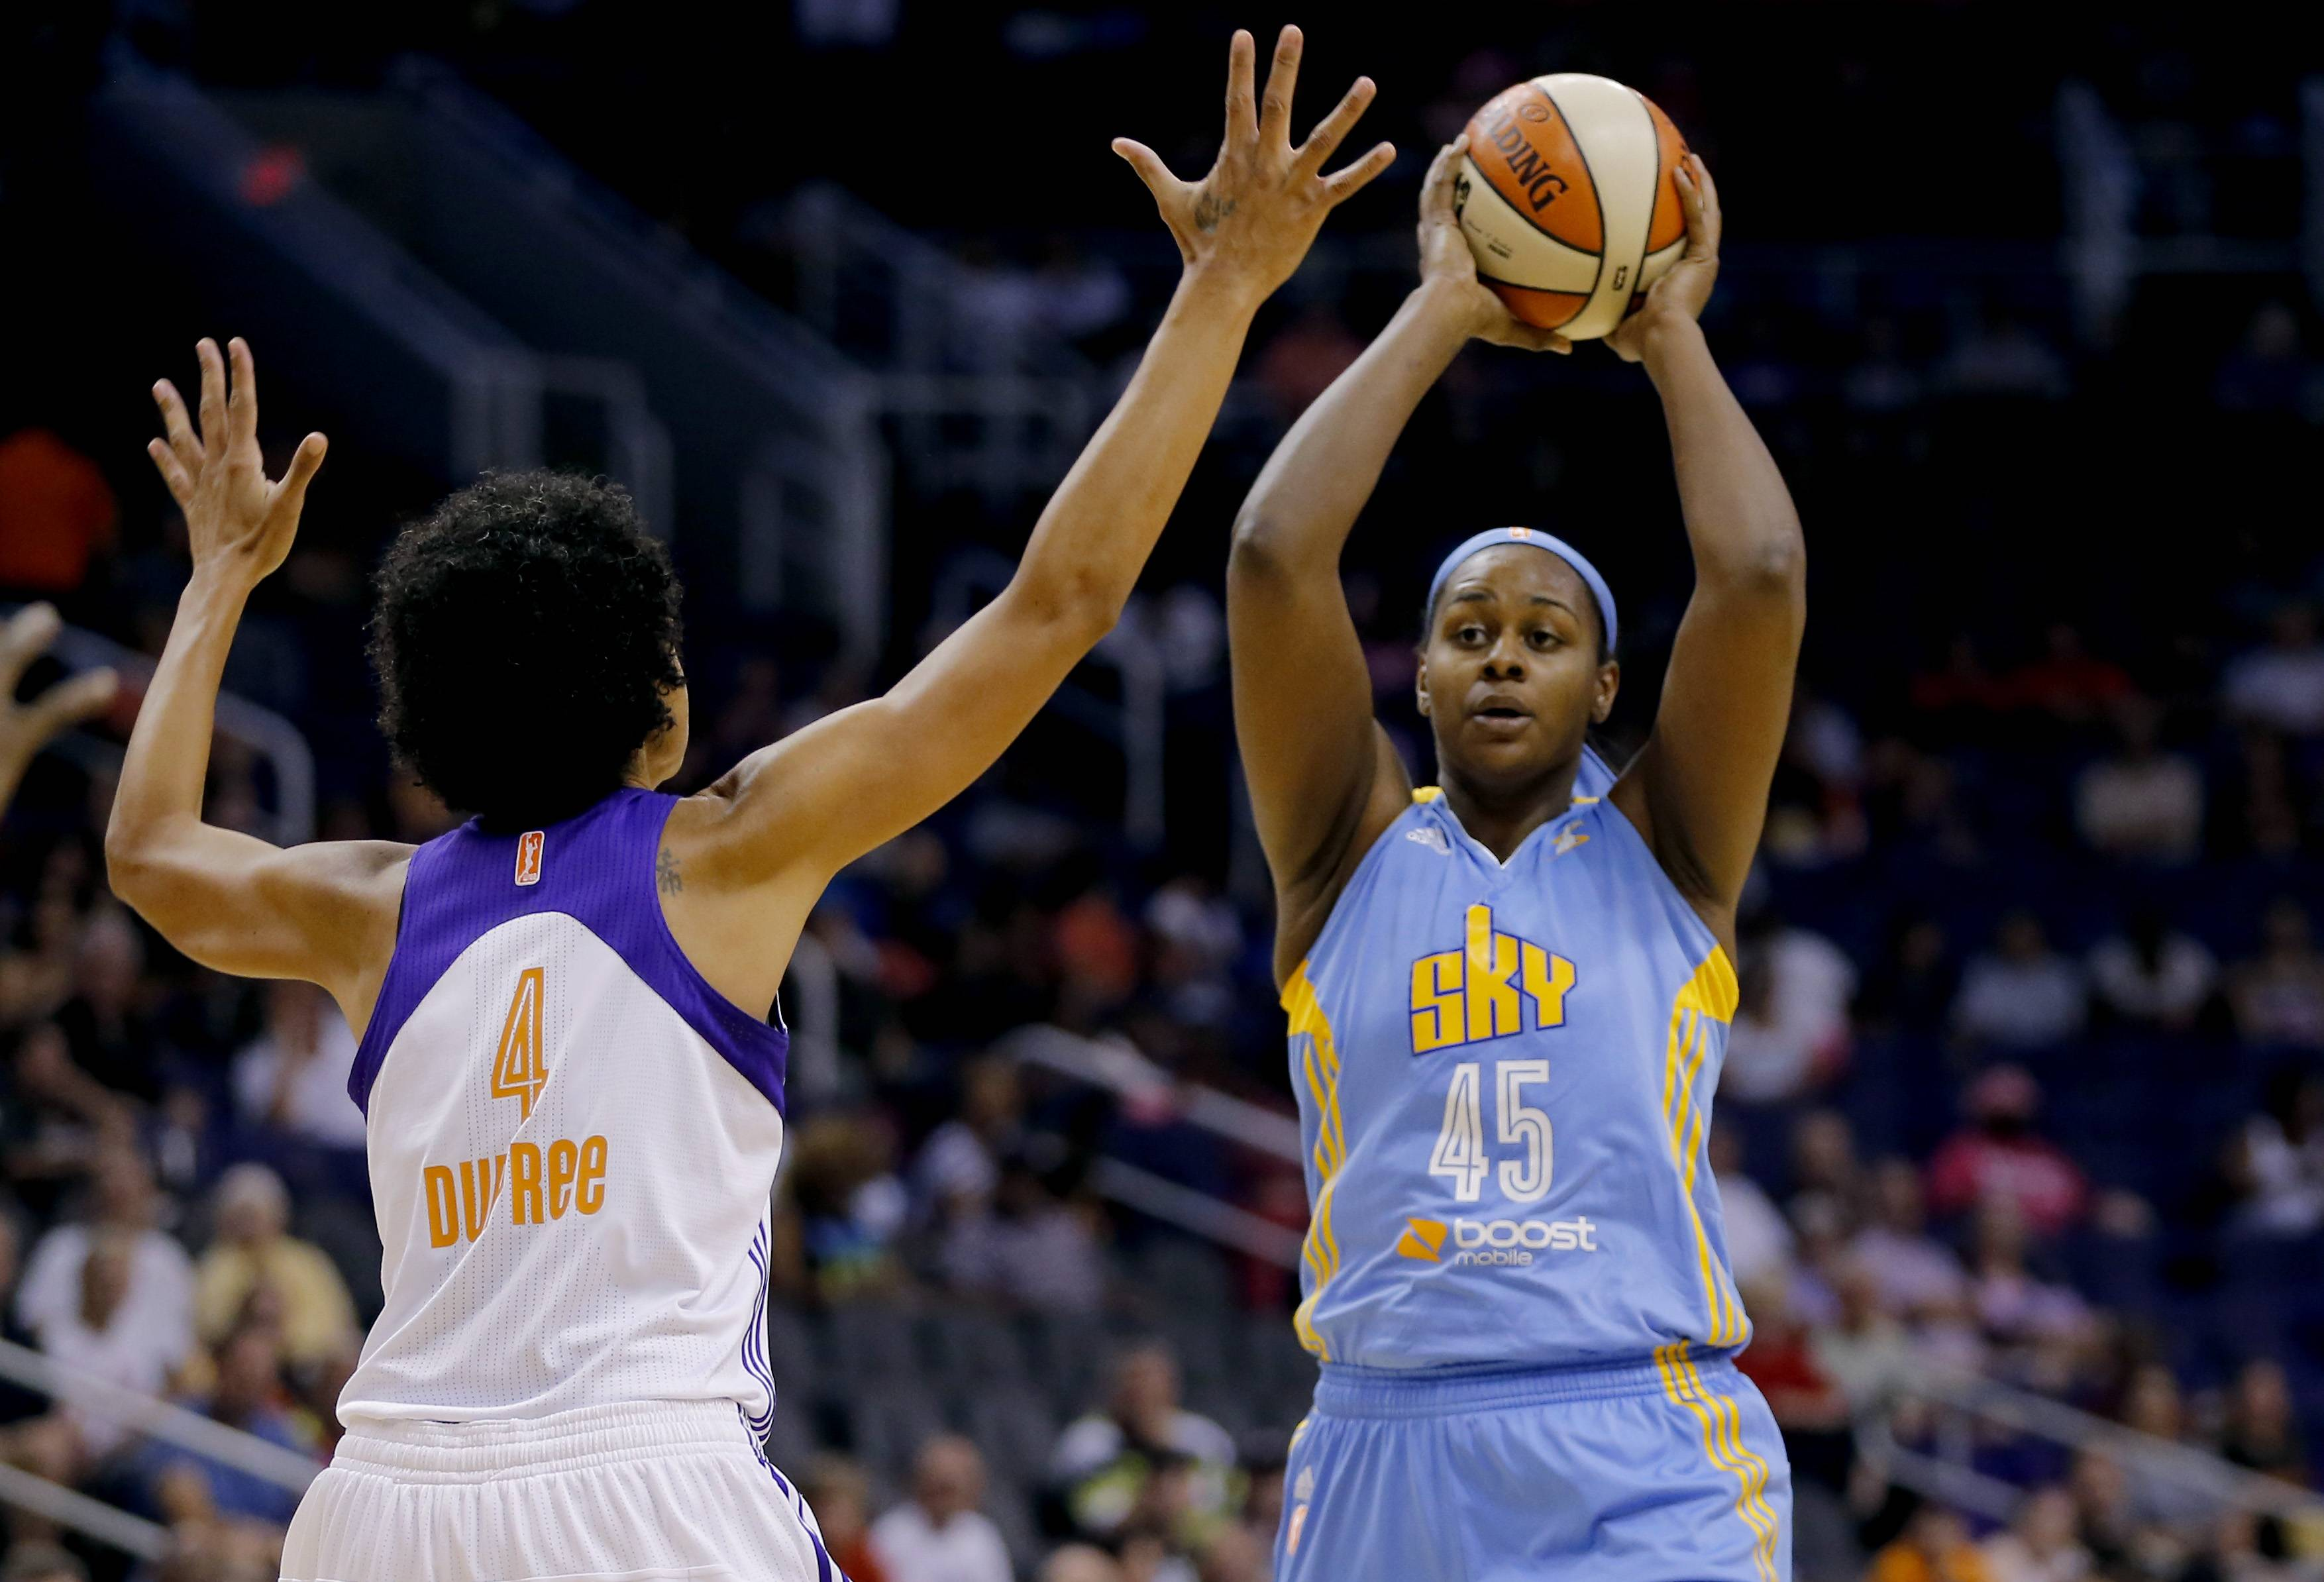 Candice Dupree had 26 points and 14 rebounds to lead the Phoenix Mercury to their sixth straight win, 87-69 over the Sky on Wednesday night.